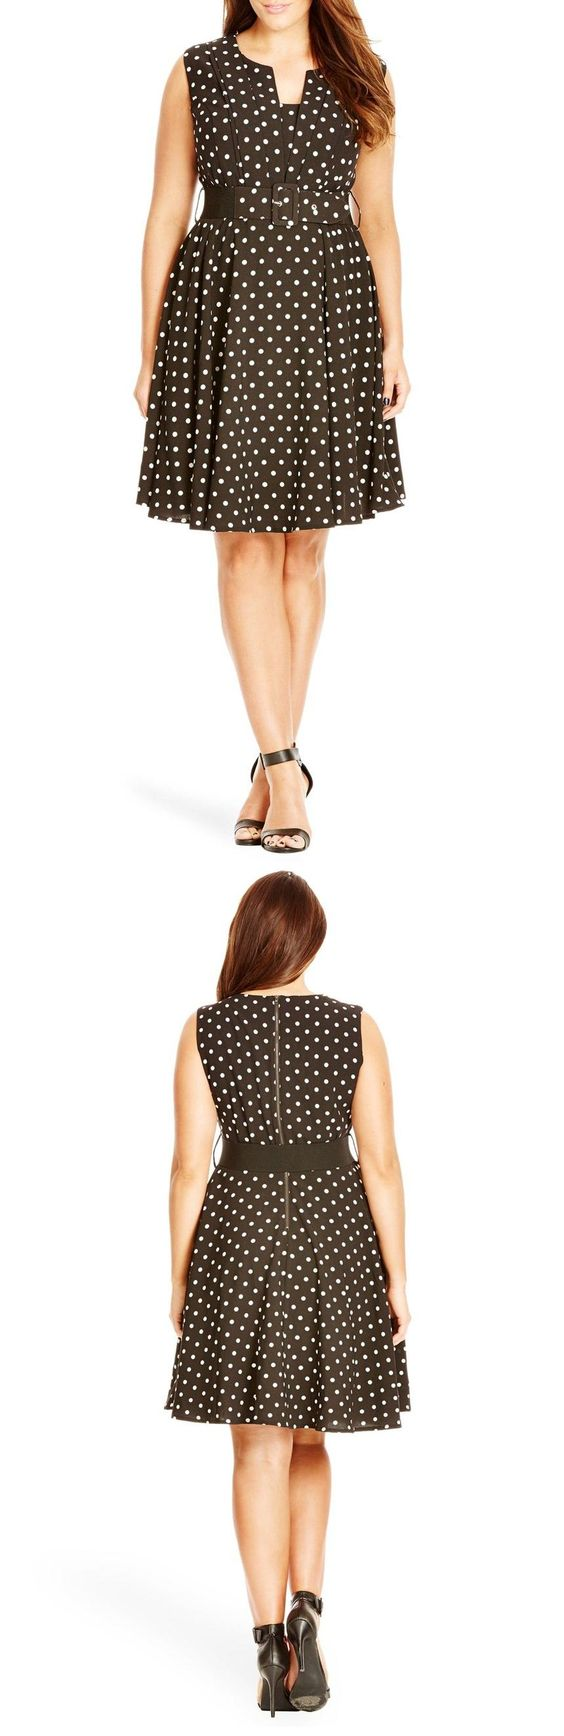 """City Chic 'Vintage Veronica' Dot Print Belted Fit & Flare Dress (Plus Size) available at #Nordstrom. Crisp pleats bring Deco-inspired structure to the notch-neck bodice of a sleeveless fit-and-flare dress. A dotted print turns up the charm, and a wide belt focuses the eye on the narrowest part of the figure. 38 1/2"""" length (size X-Small). Exposed back-zip closure. Notched neck. Sleeveless. Removable elasticized belt. 95% polyester, 5% elastane."""